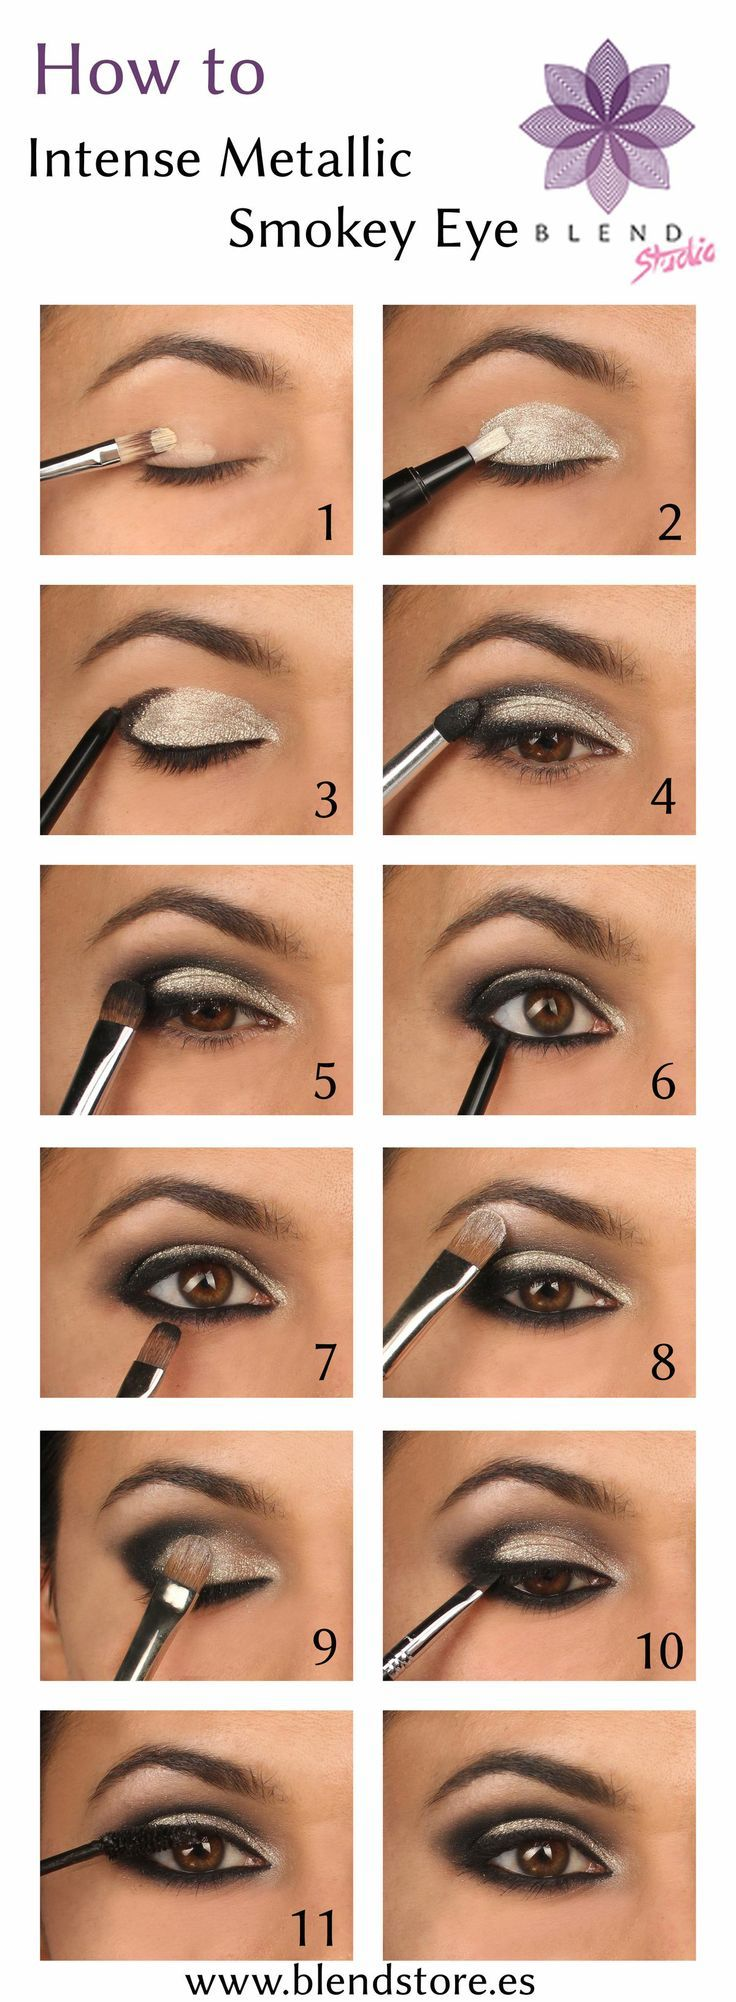 Metallic Smokey Eyes for Party Eye Makeup #promgirl #makeup #eyes